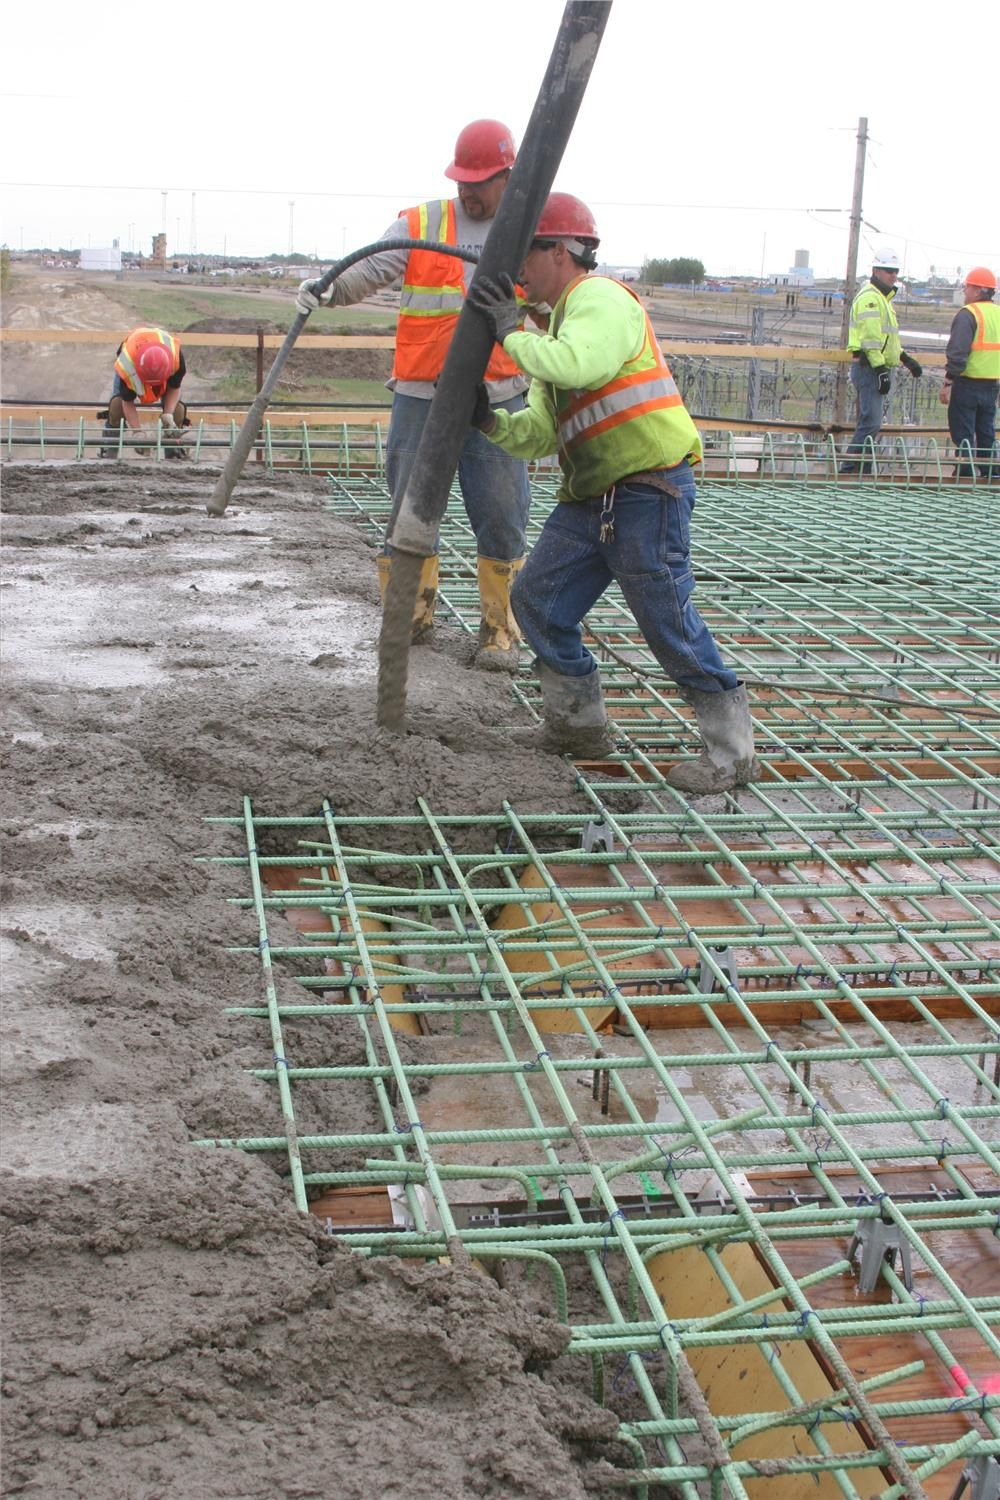 Roughly 435 cu. yds. (332.6 cu m) of concrete were poured in one day.